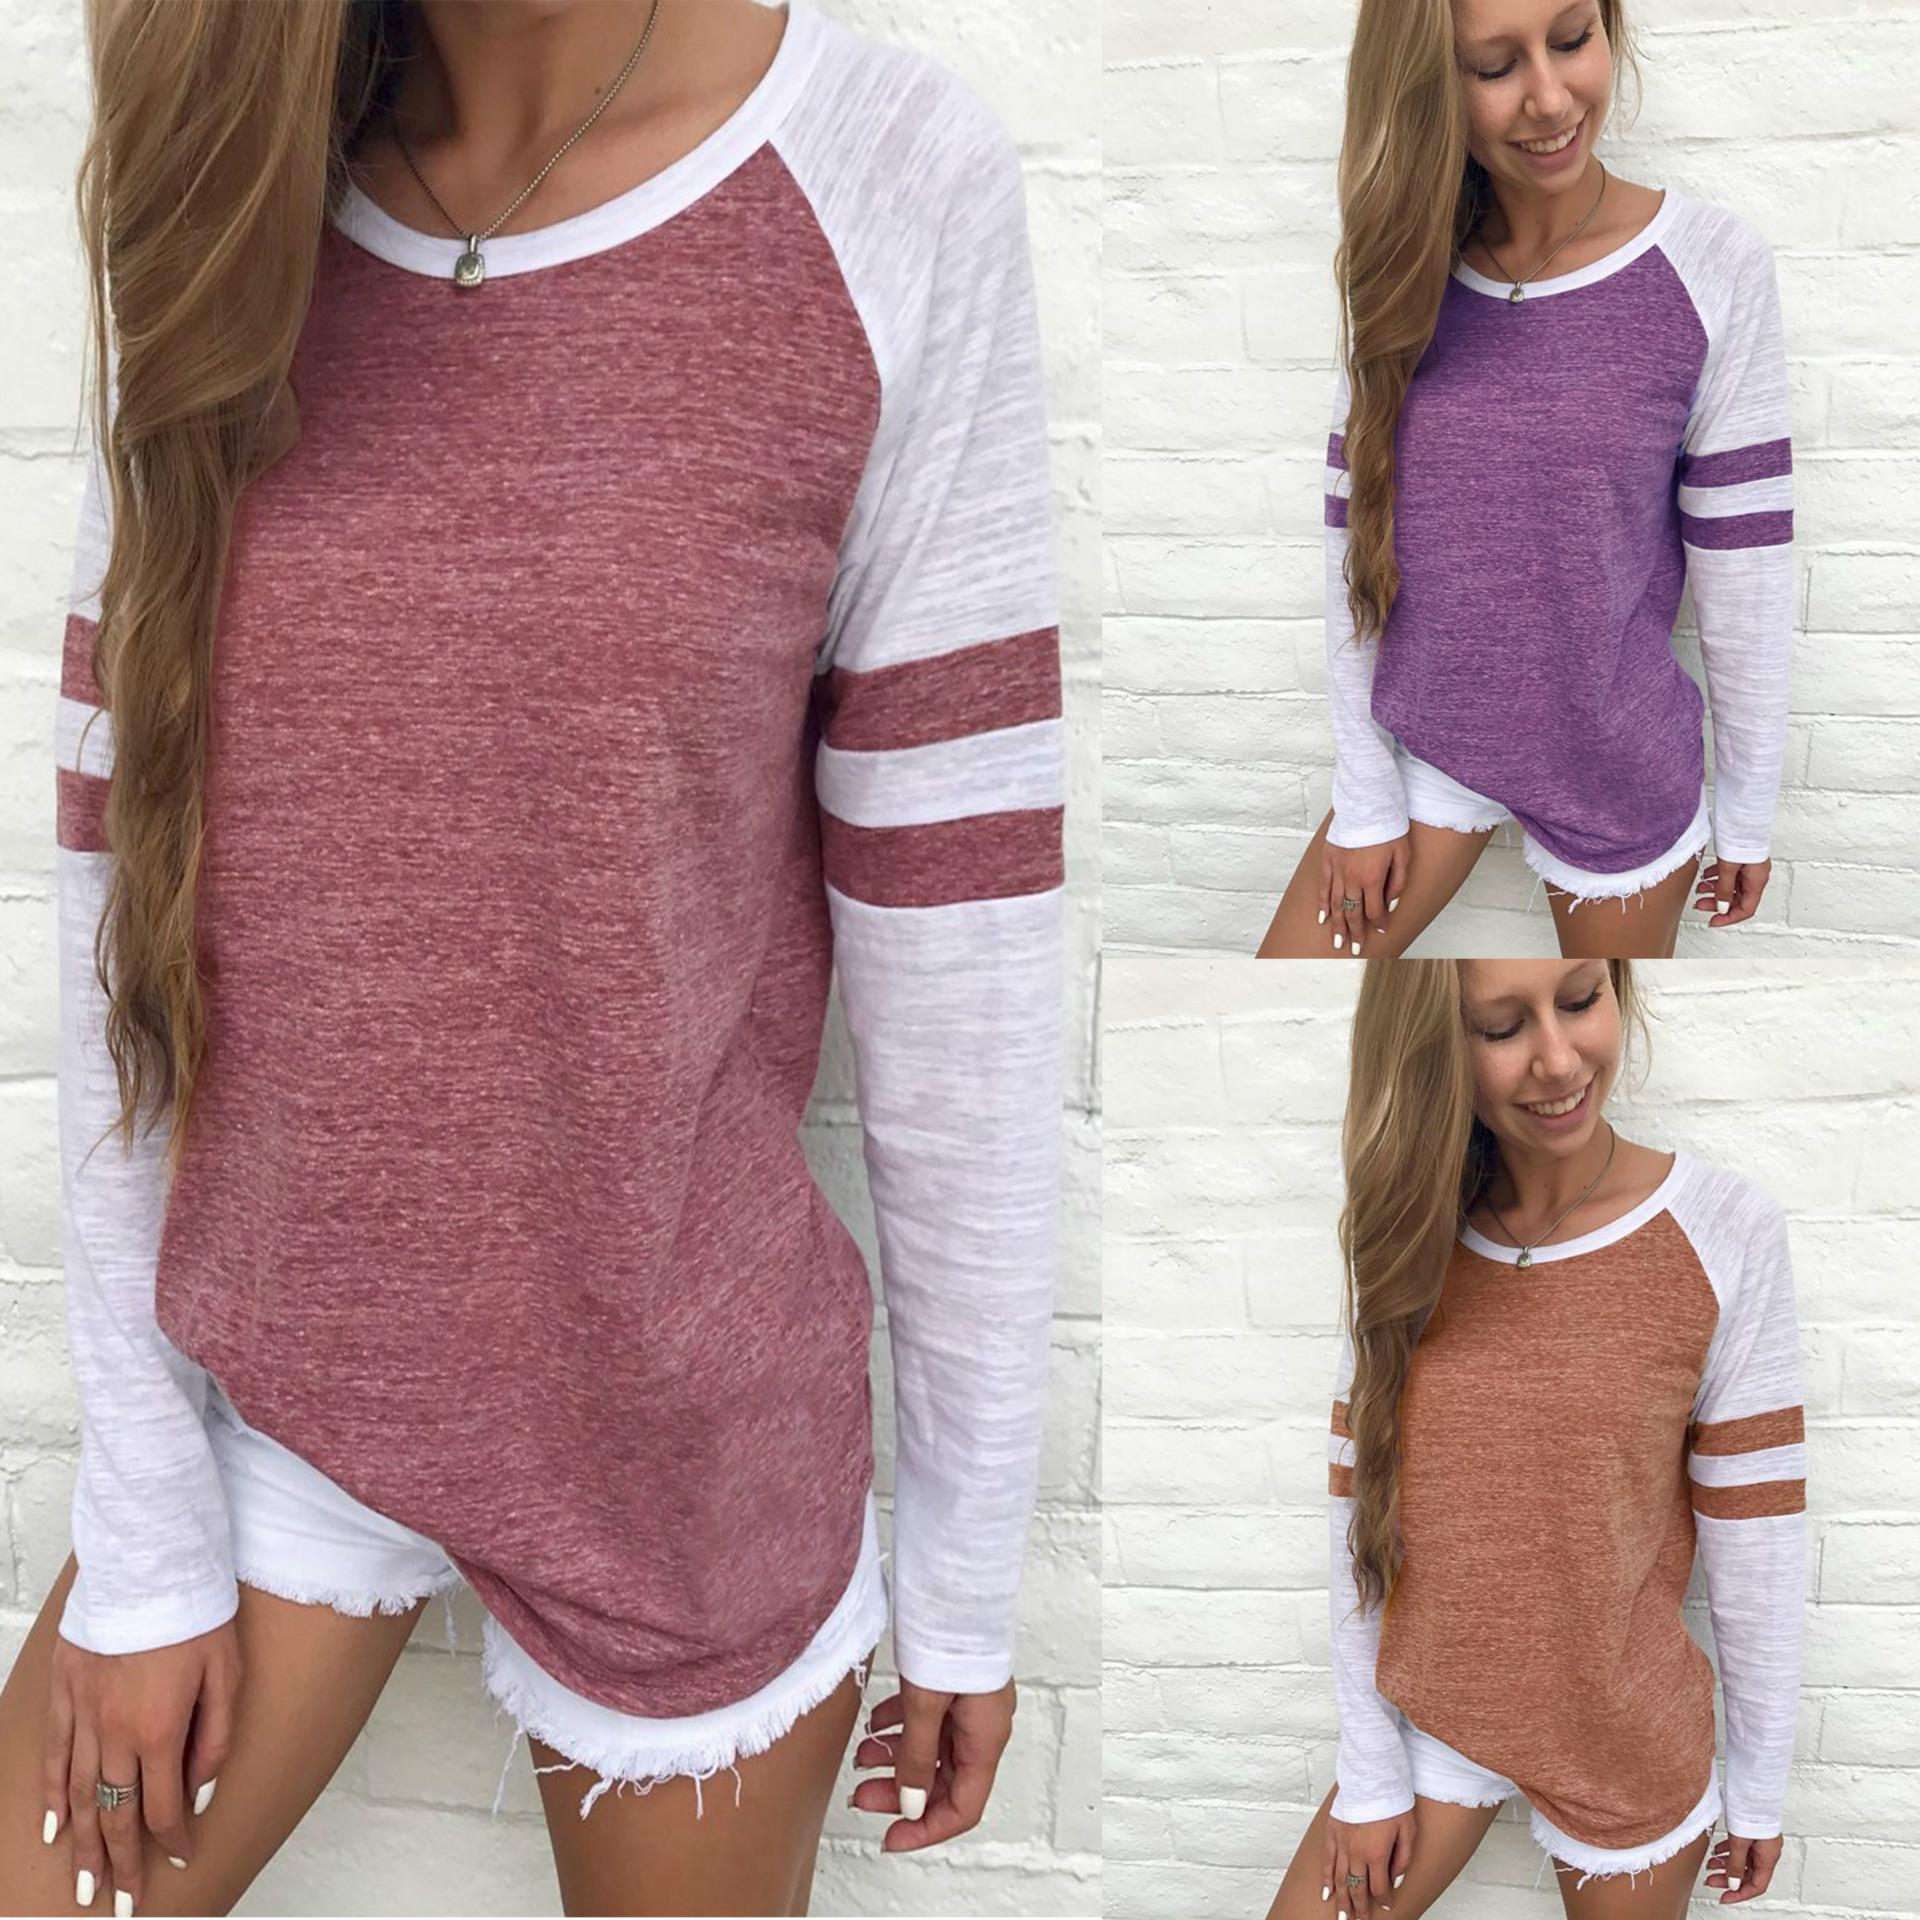 2101fabc16f652 Women Fashion Clothing 2017 New Striped Long Sleeve Autumn Winter T Shirts  Casual Ladies Round Neck Loose Tops Blouse S 4XL RF0450 Short Sleeve Shirts  Cheap ...